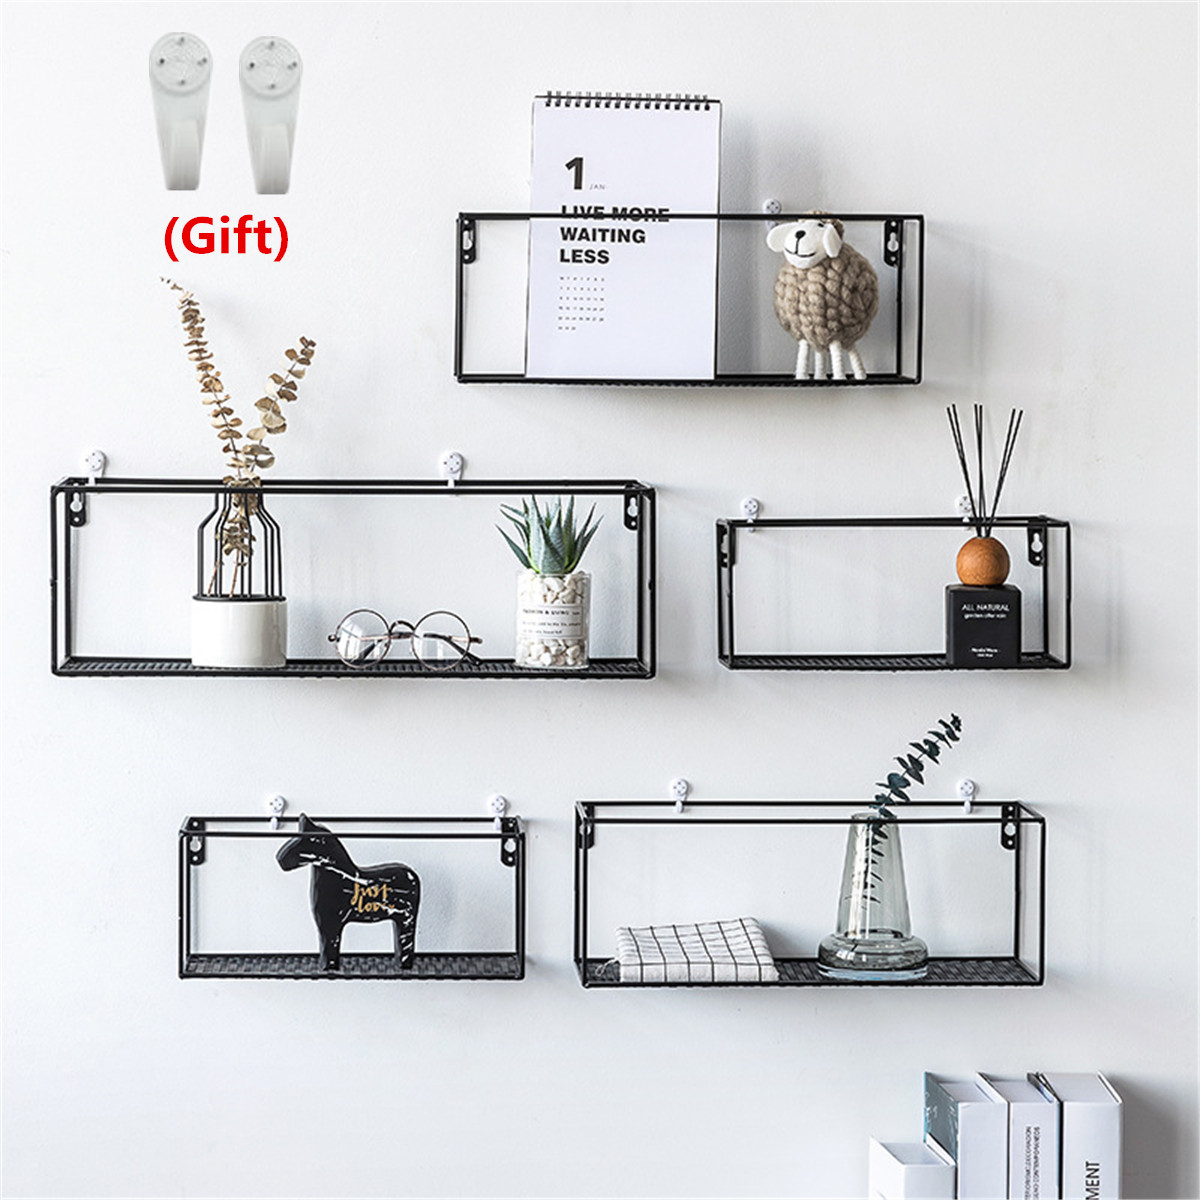 US $10.54 52% OFF|Iron Wall Shelf Wall Mounted Storage Rack Organization  For Kitchen Bedroom Home Decor Kid Room DIY Wall Decoration Holder-in ...